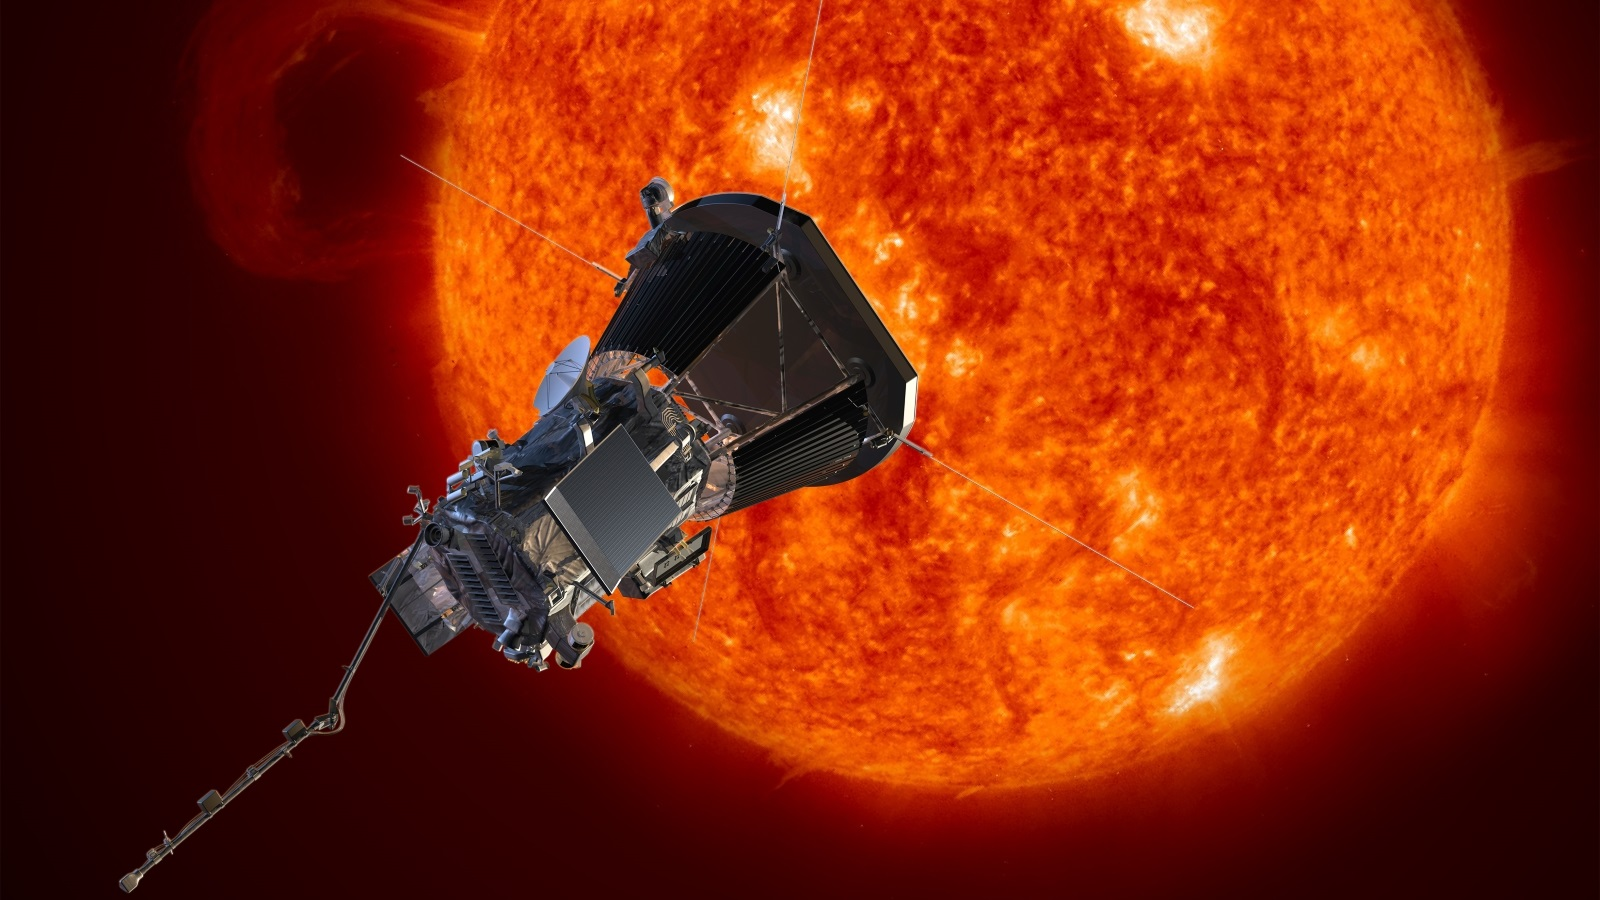 An artist's concept of Parker Solar Probe approaching the Sun. Photo Credit: Johns Hopkins University Applied Physics Laboratory